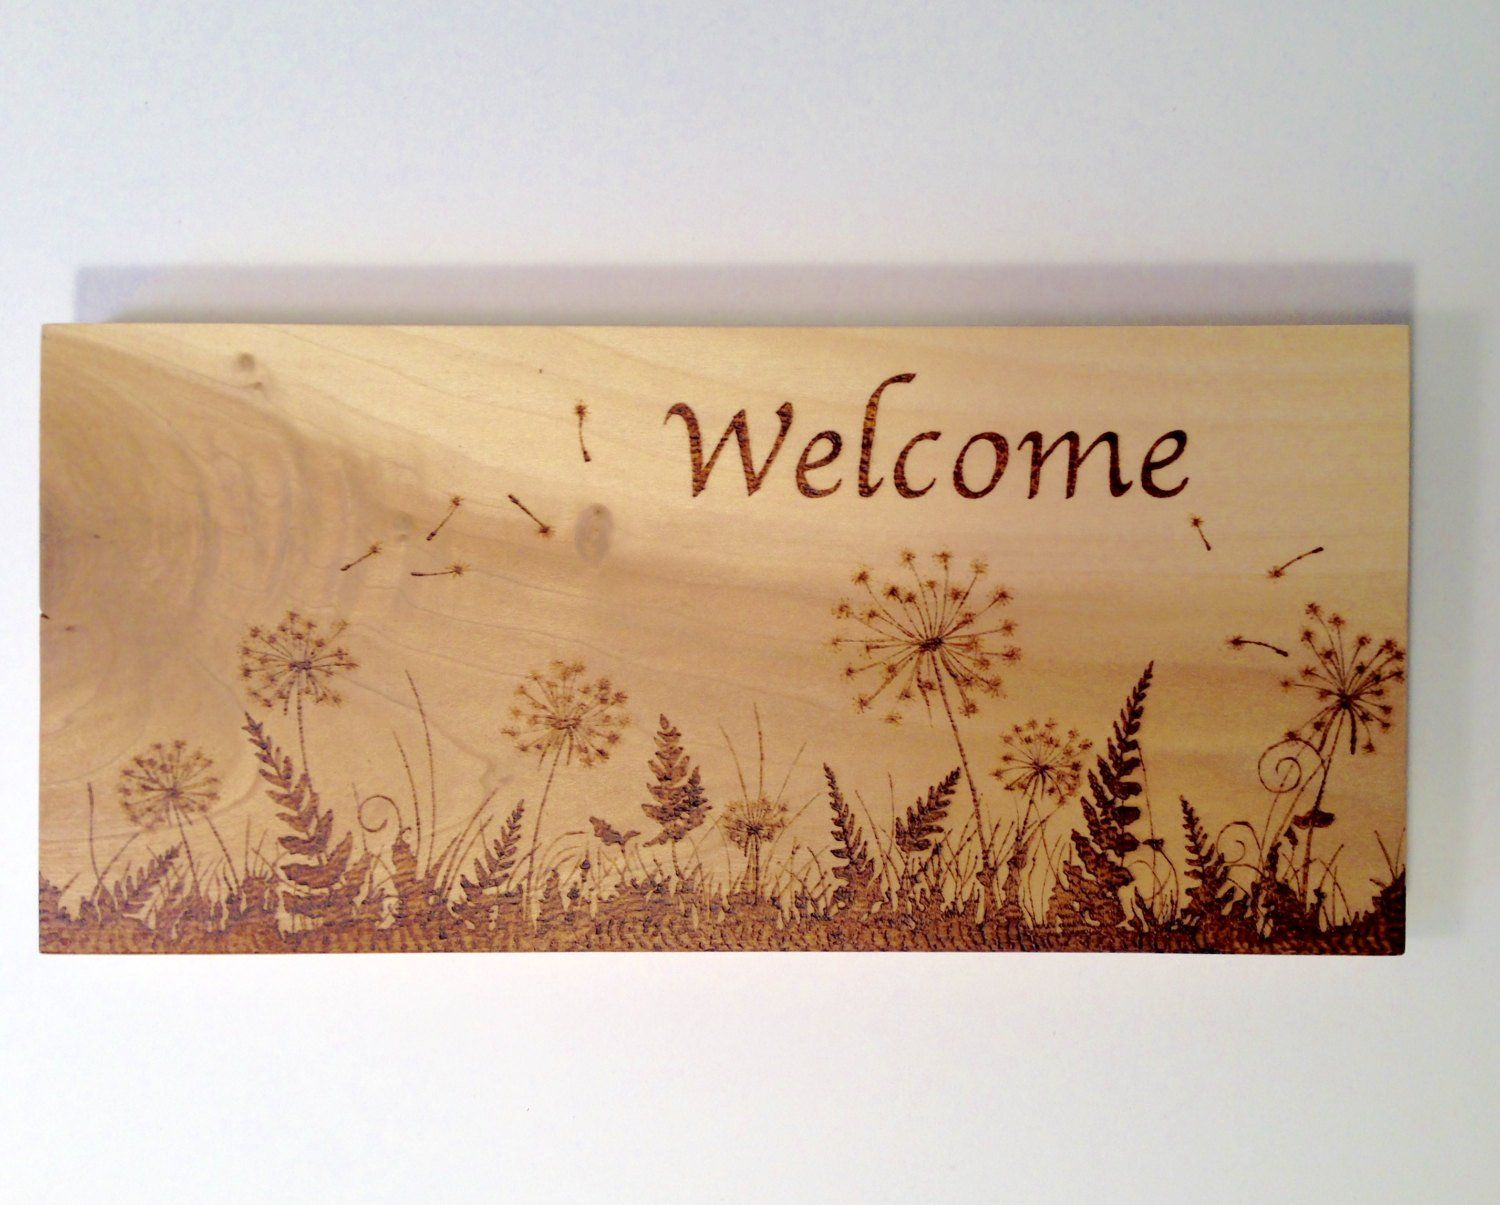 Welcome wood burned sign - dandelions silhouette - pyrography #burnedwoodstenciling